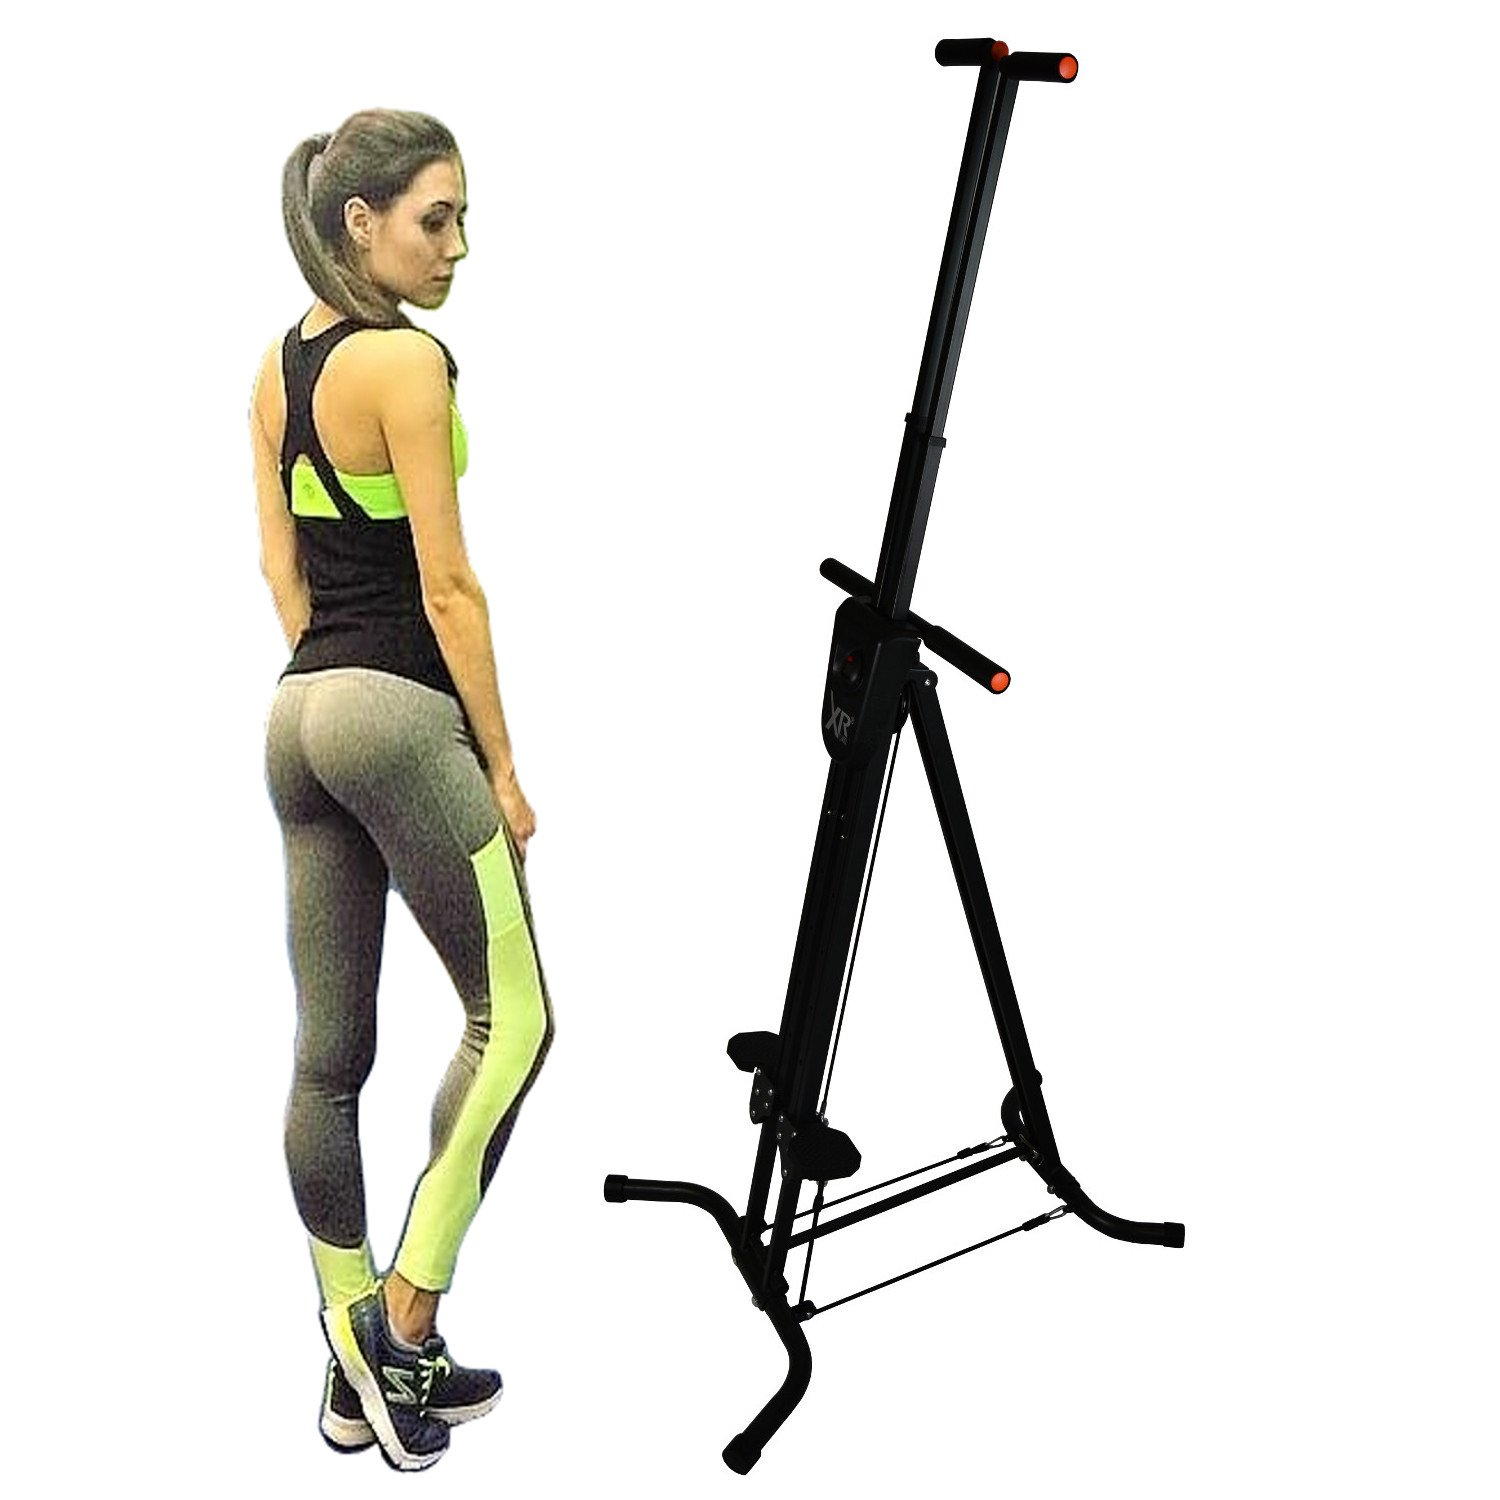 17fe3a93f59 Amazon.com   XR Vertical Climber with Resistance Cords Cardio Stepper  Exercise Workout Machine   Sports   Outdoors